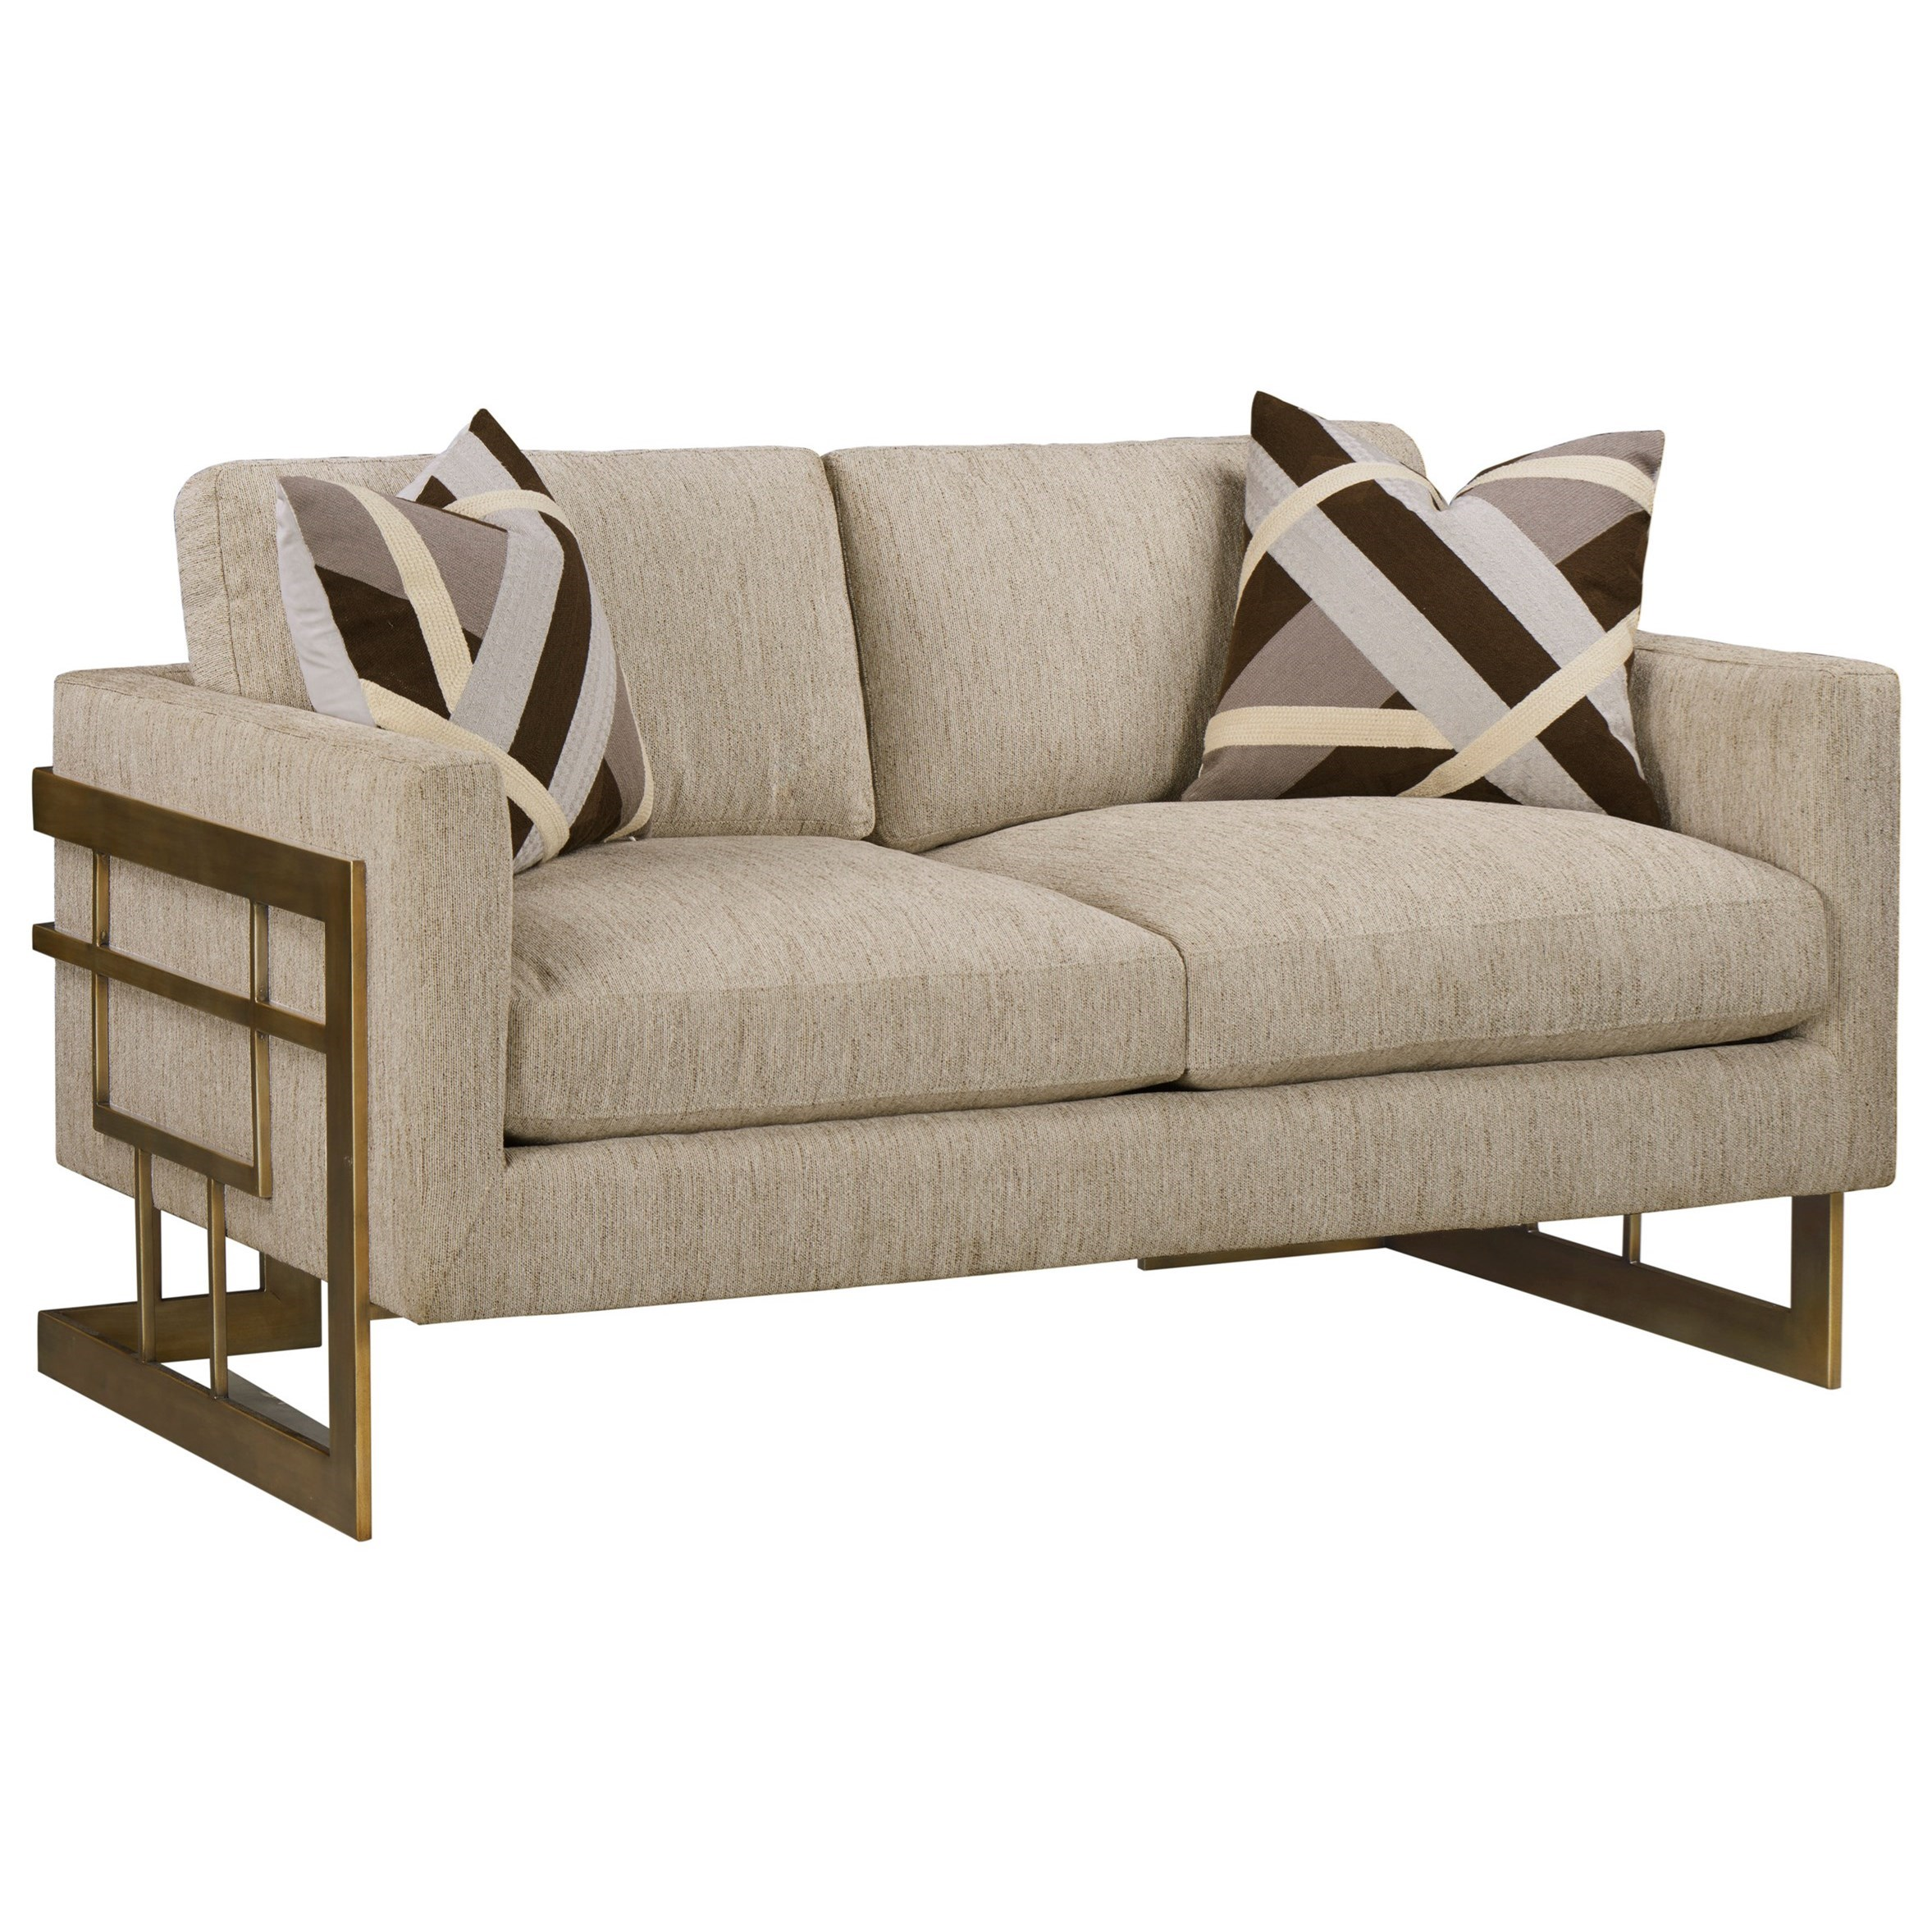 WoodWright Upholstery Loveseat by A.R.T. Furniture Inc at Home Collections Furniture